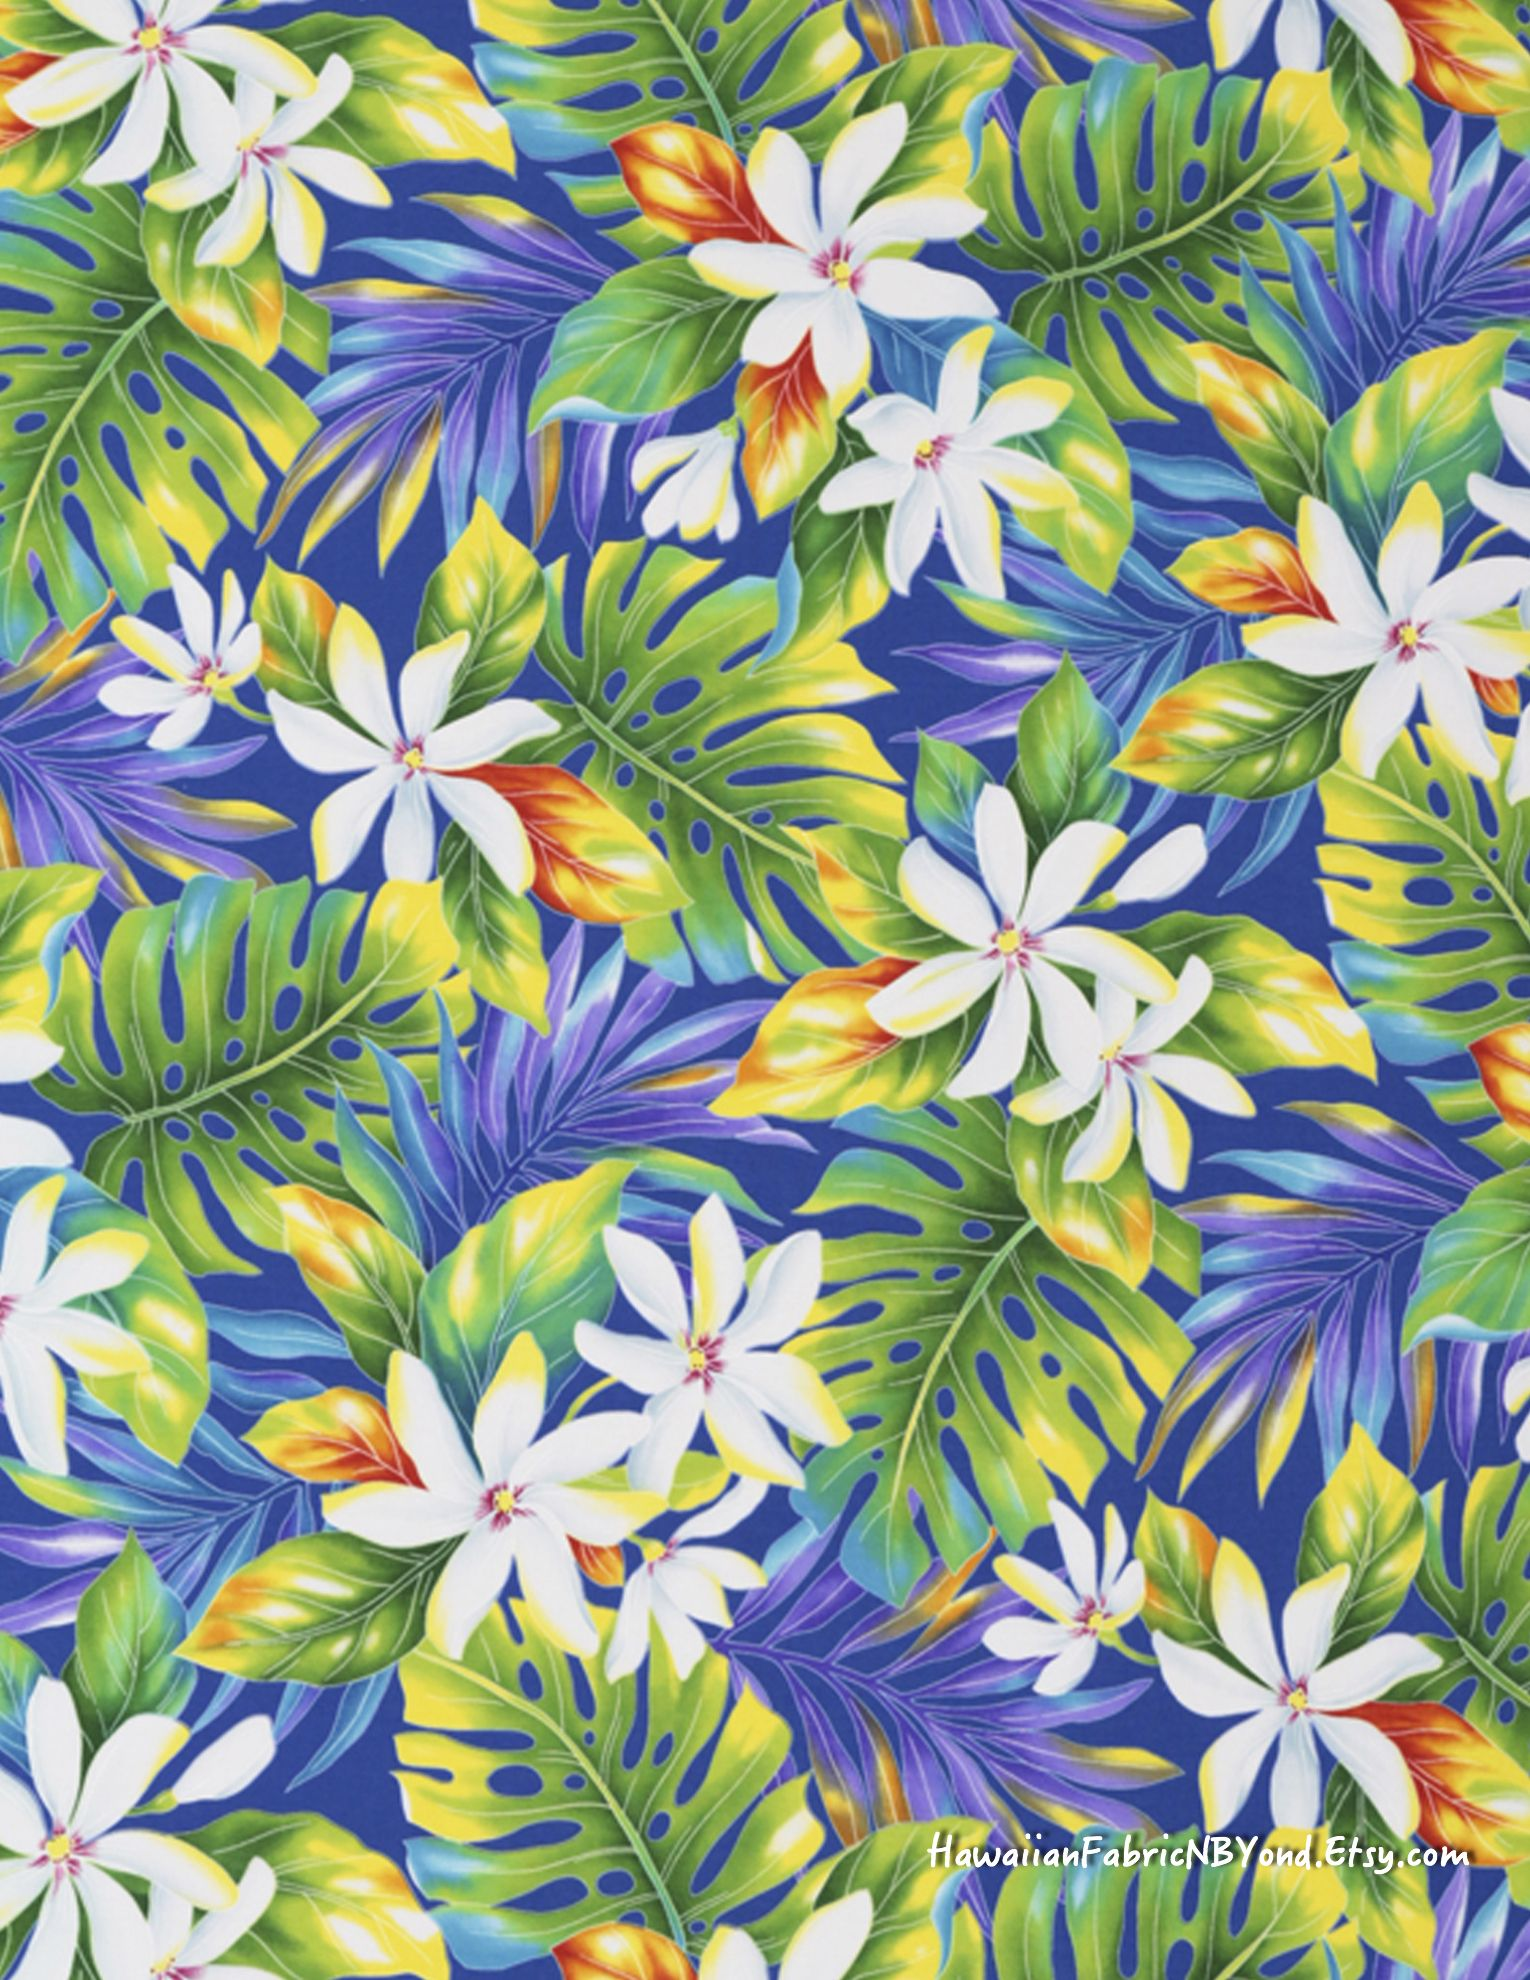 e41e0b30 Tropical Fabric: White Tiare flowers amidst green, blue, and yellow  Monstera leaves. Cotton. By HawaiianFabricNBYond.Etsy.com